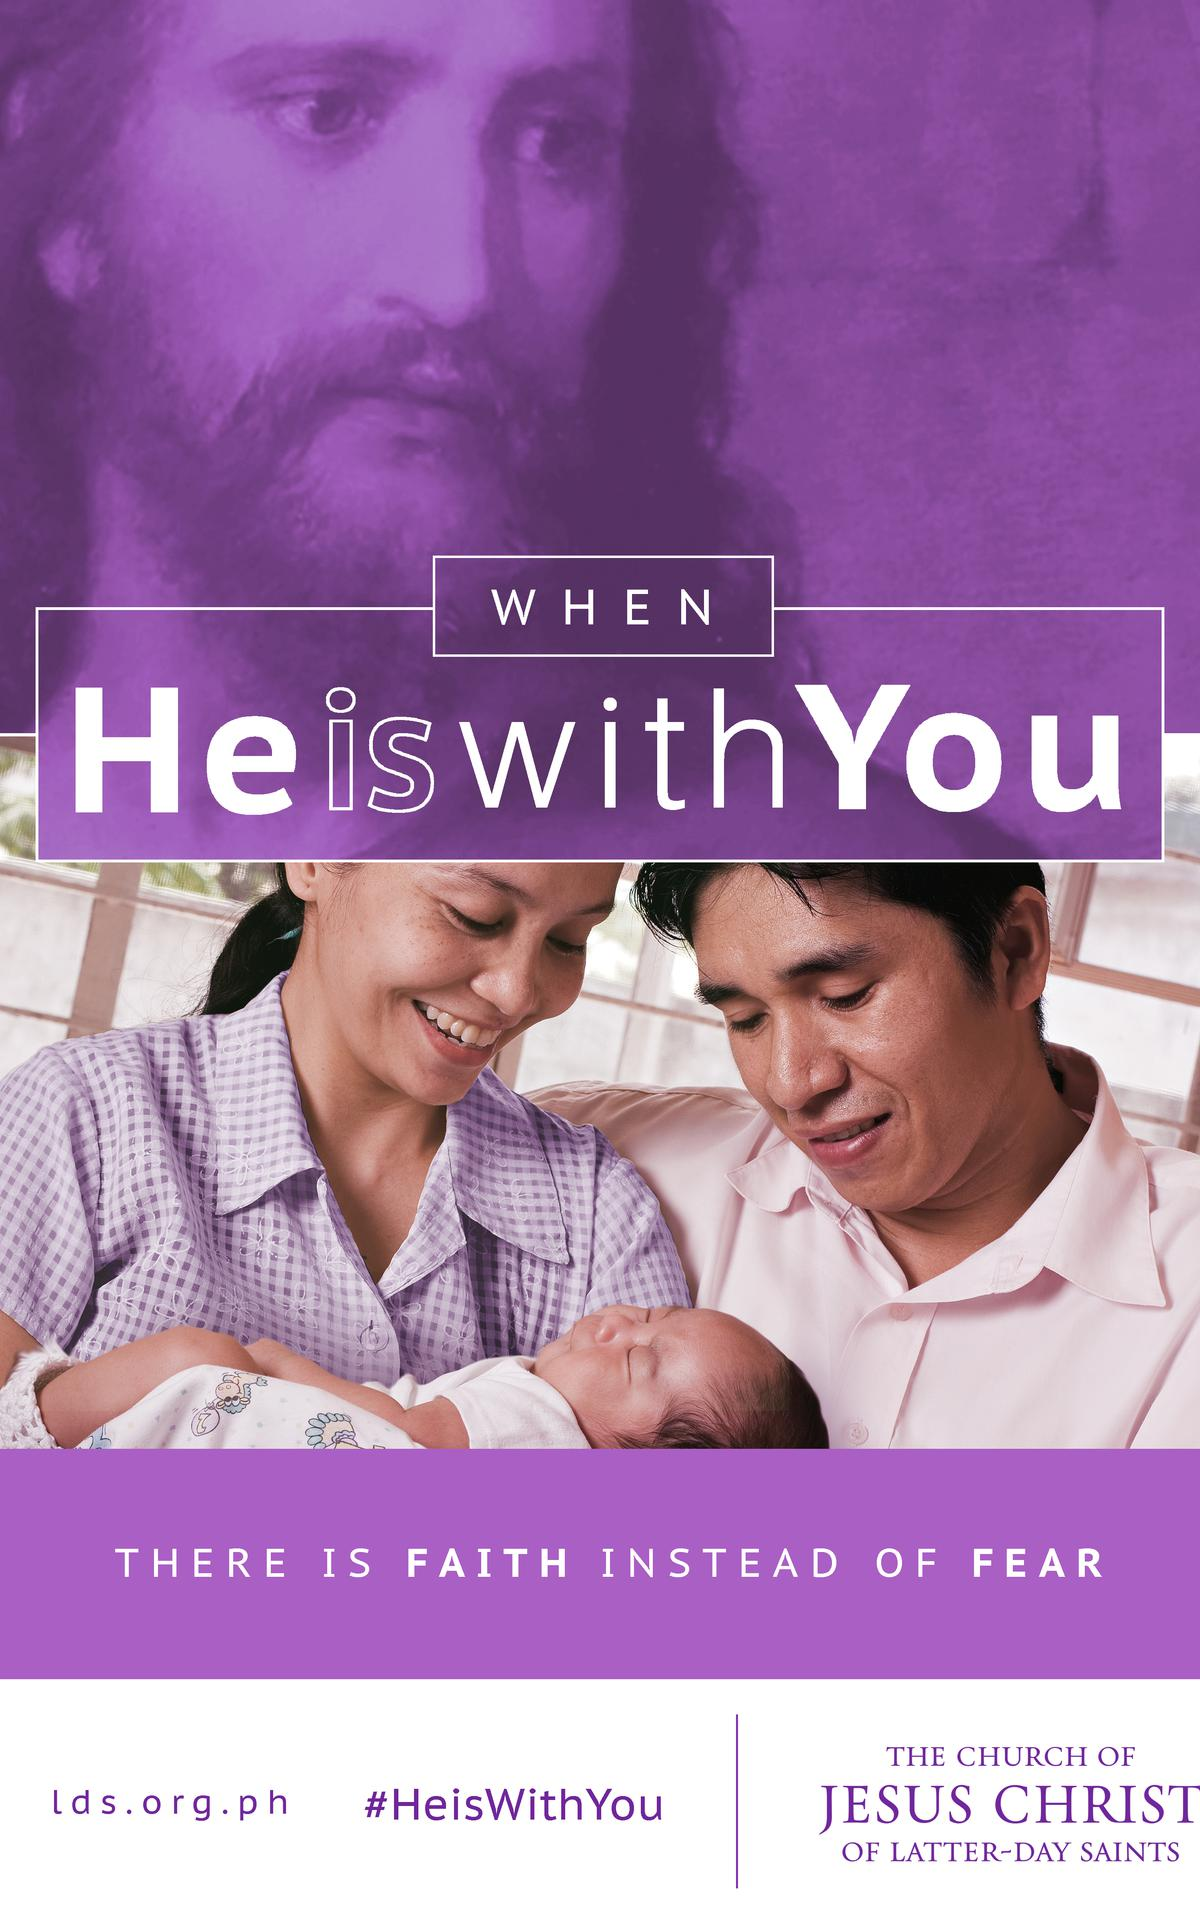 When He is with you there is faith